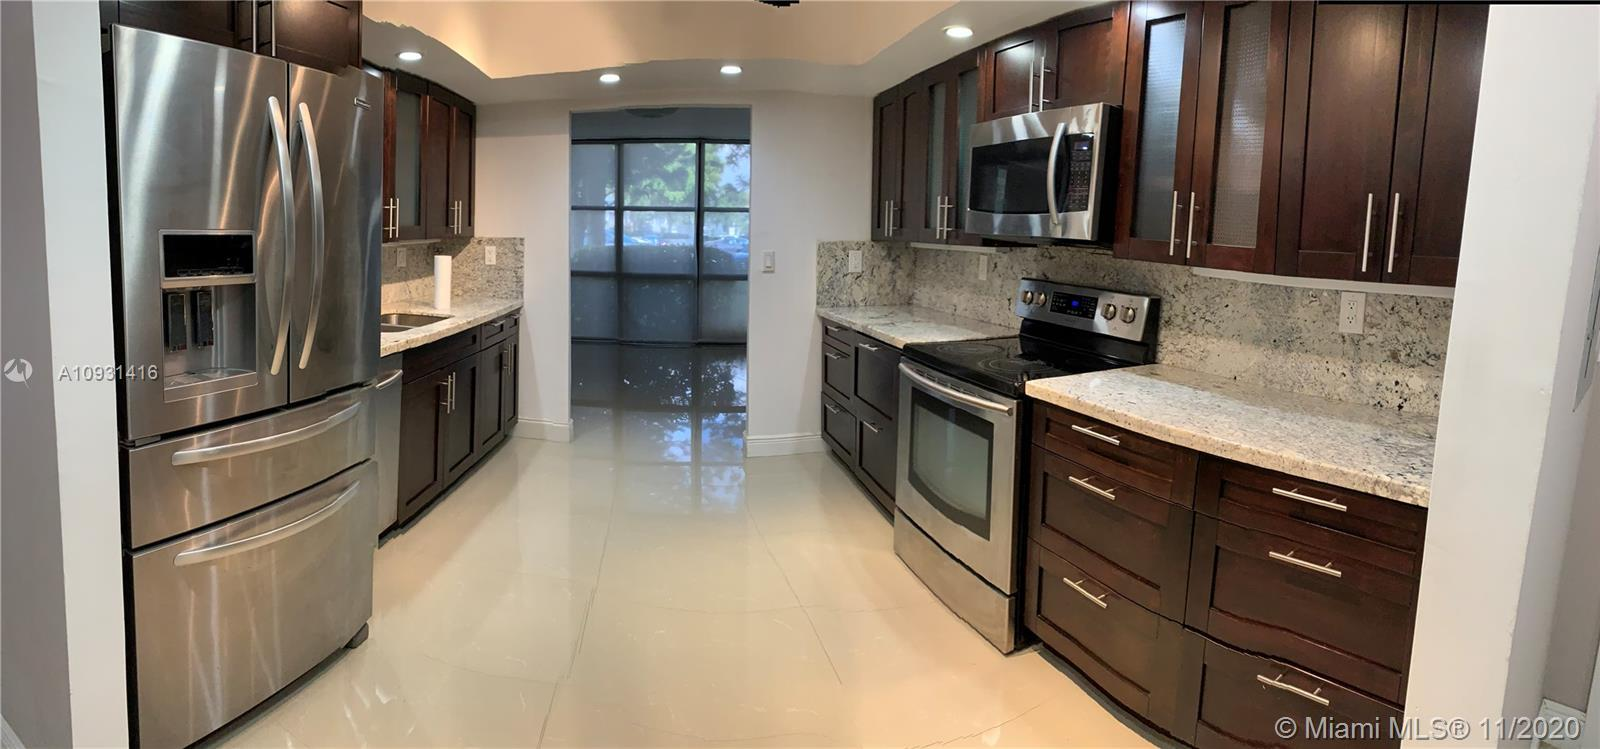 **ONE OF A KIND & FULLY RENOVATED, BRIGHT CORNER UNIT WITH DEN AND SEPARATE DINING ROOM AND LIVING R